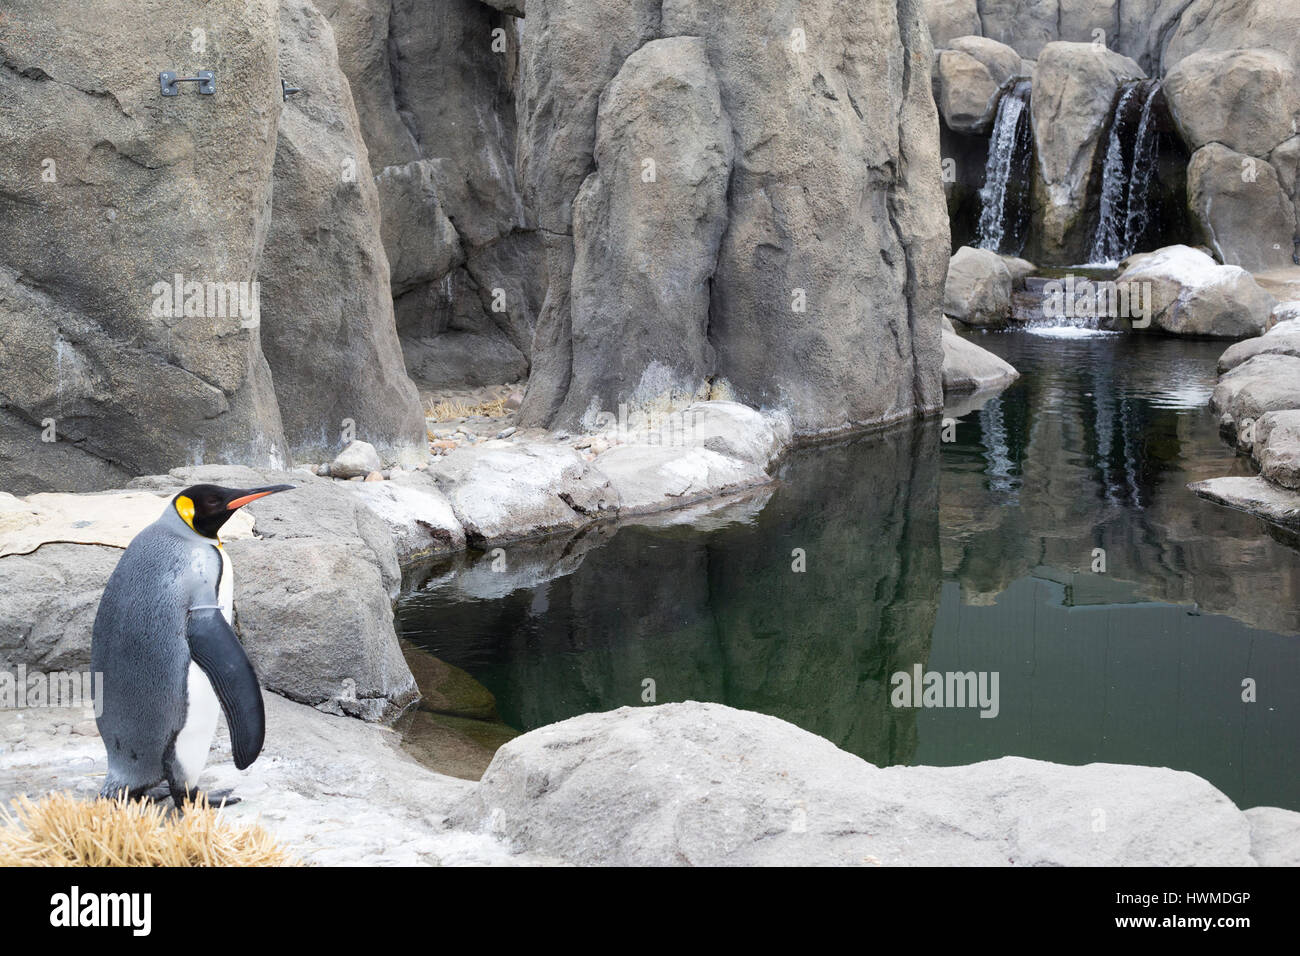 King penguin (Aptenodytes patagonicus) in outdoor enclosure with pool at the Calgary zoo. - Stock Image